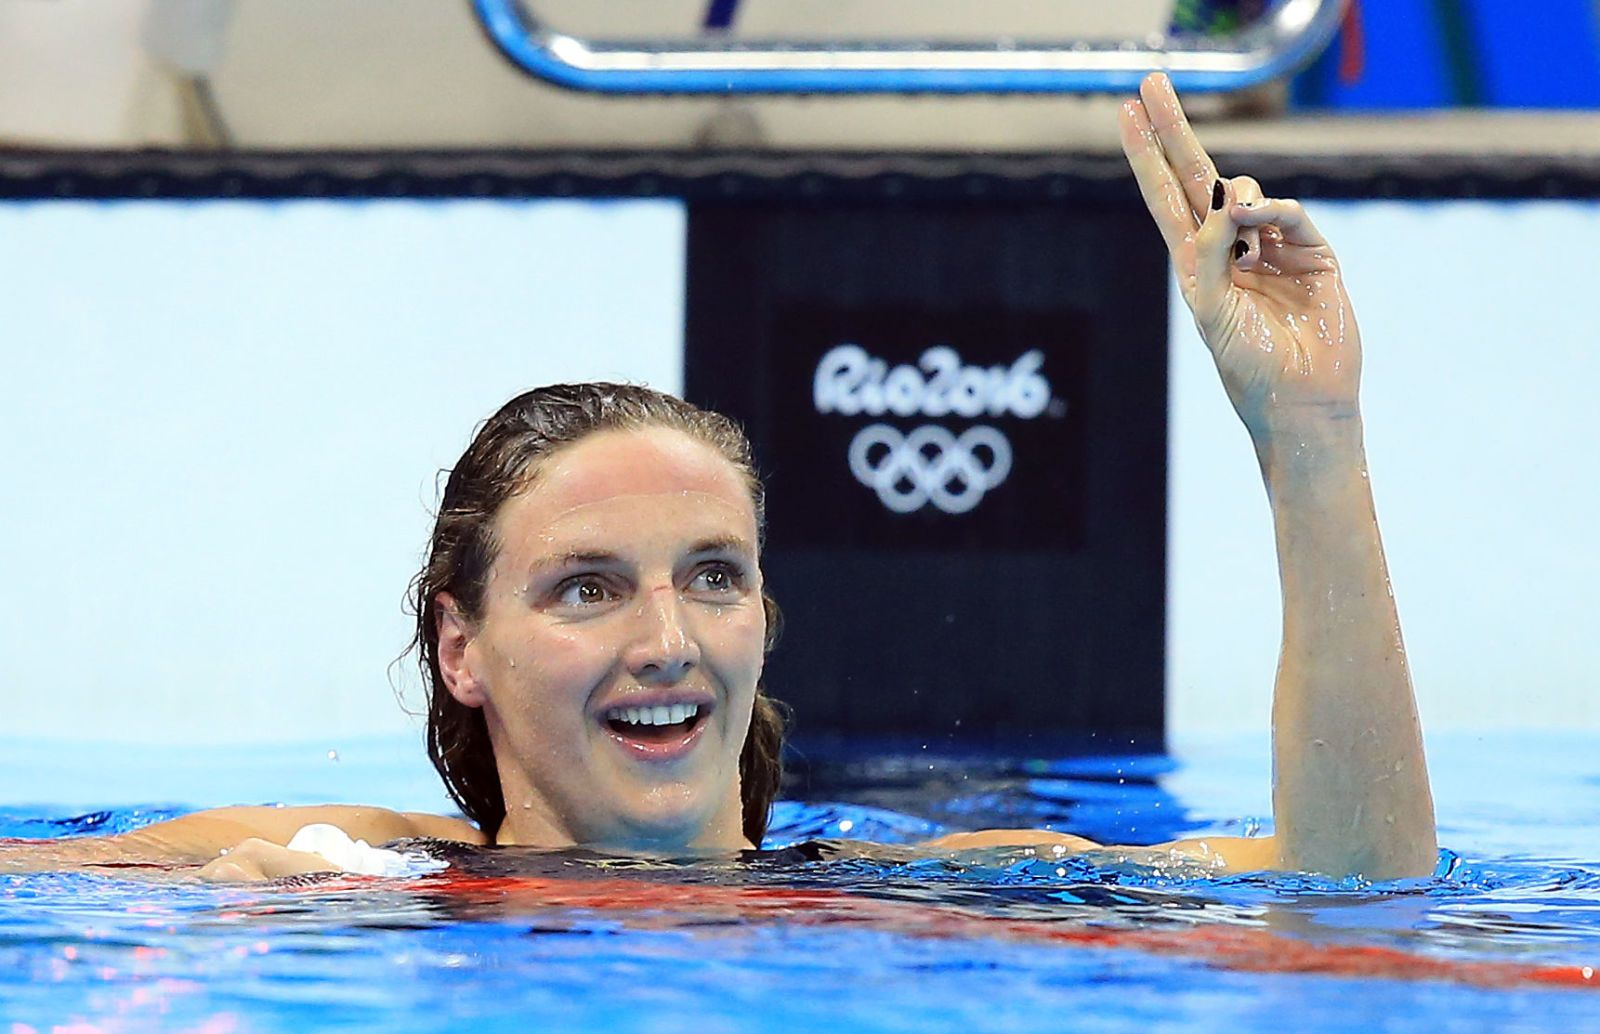 Olympic Commentator Is In Hot Water After Crediting This Swimmers World Record to Her Husband